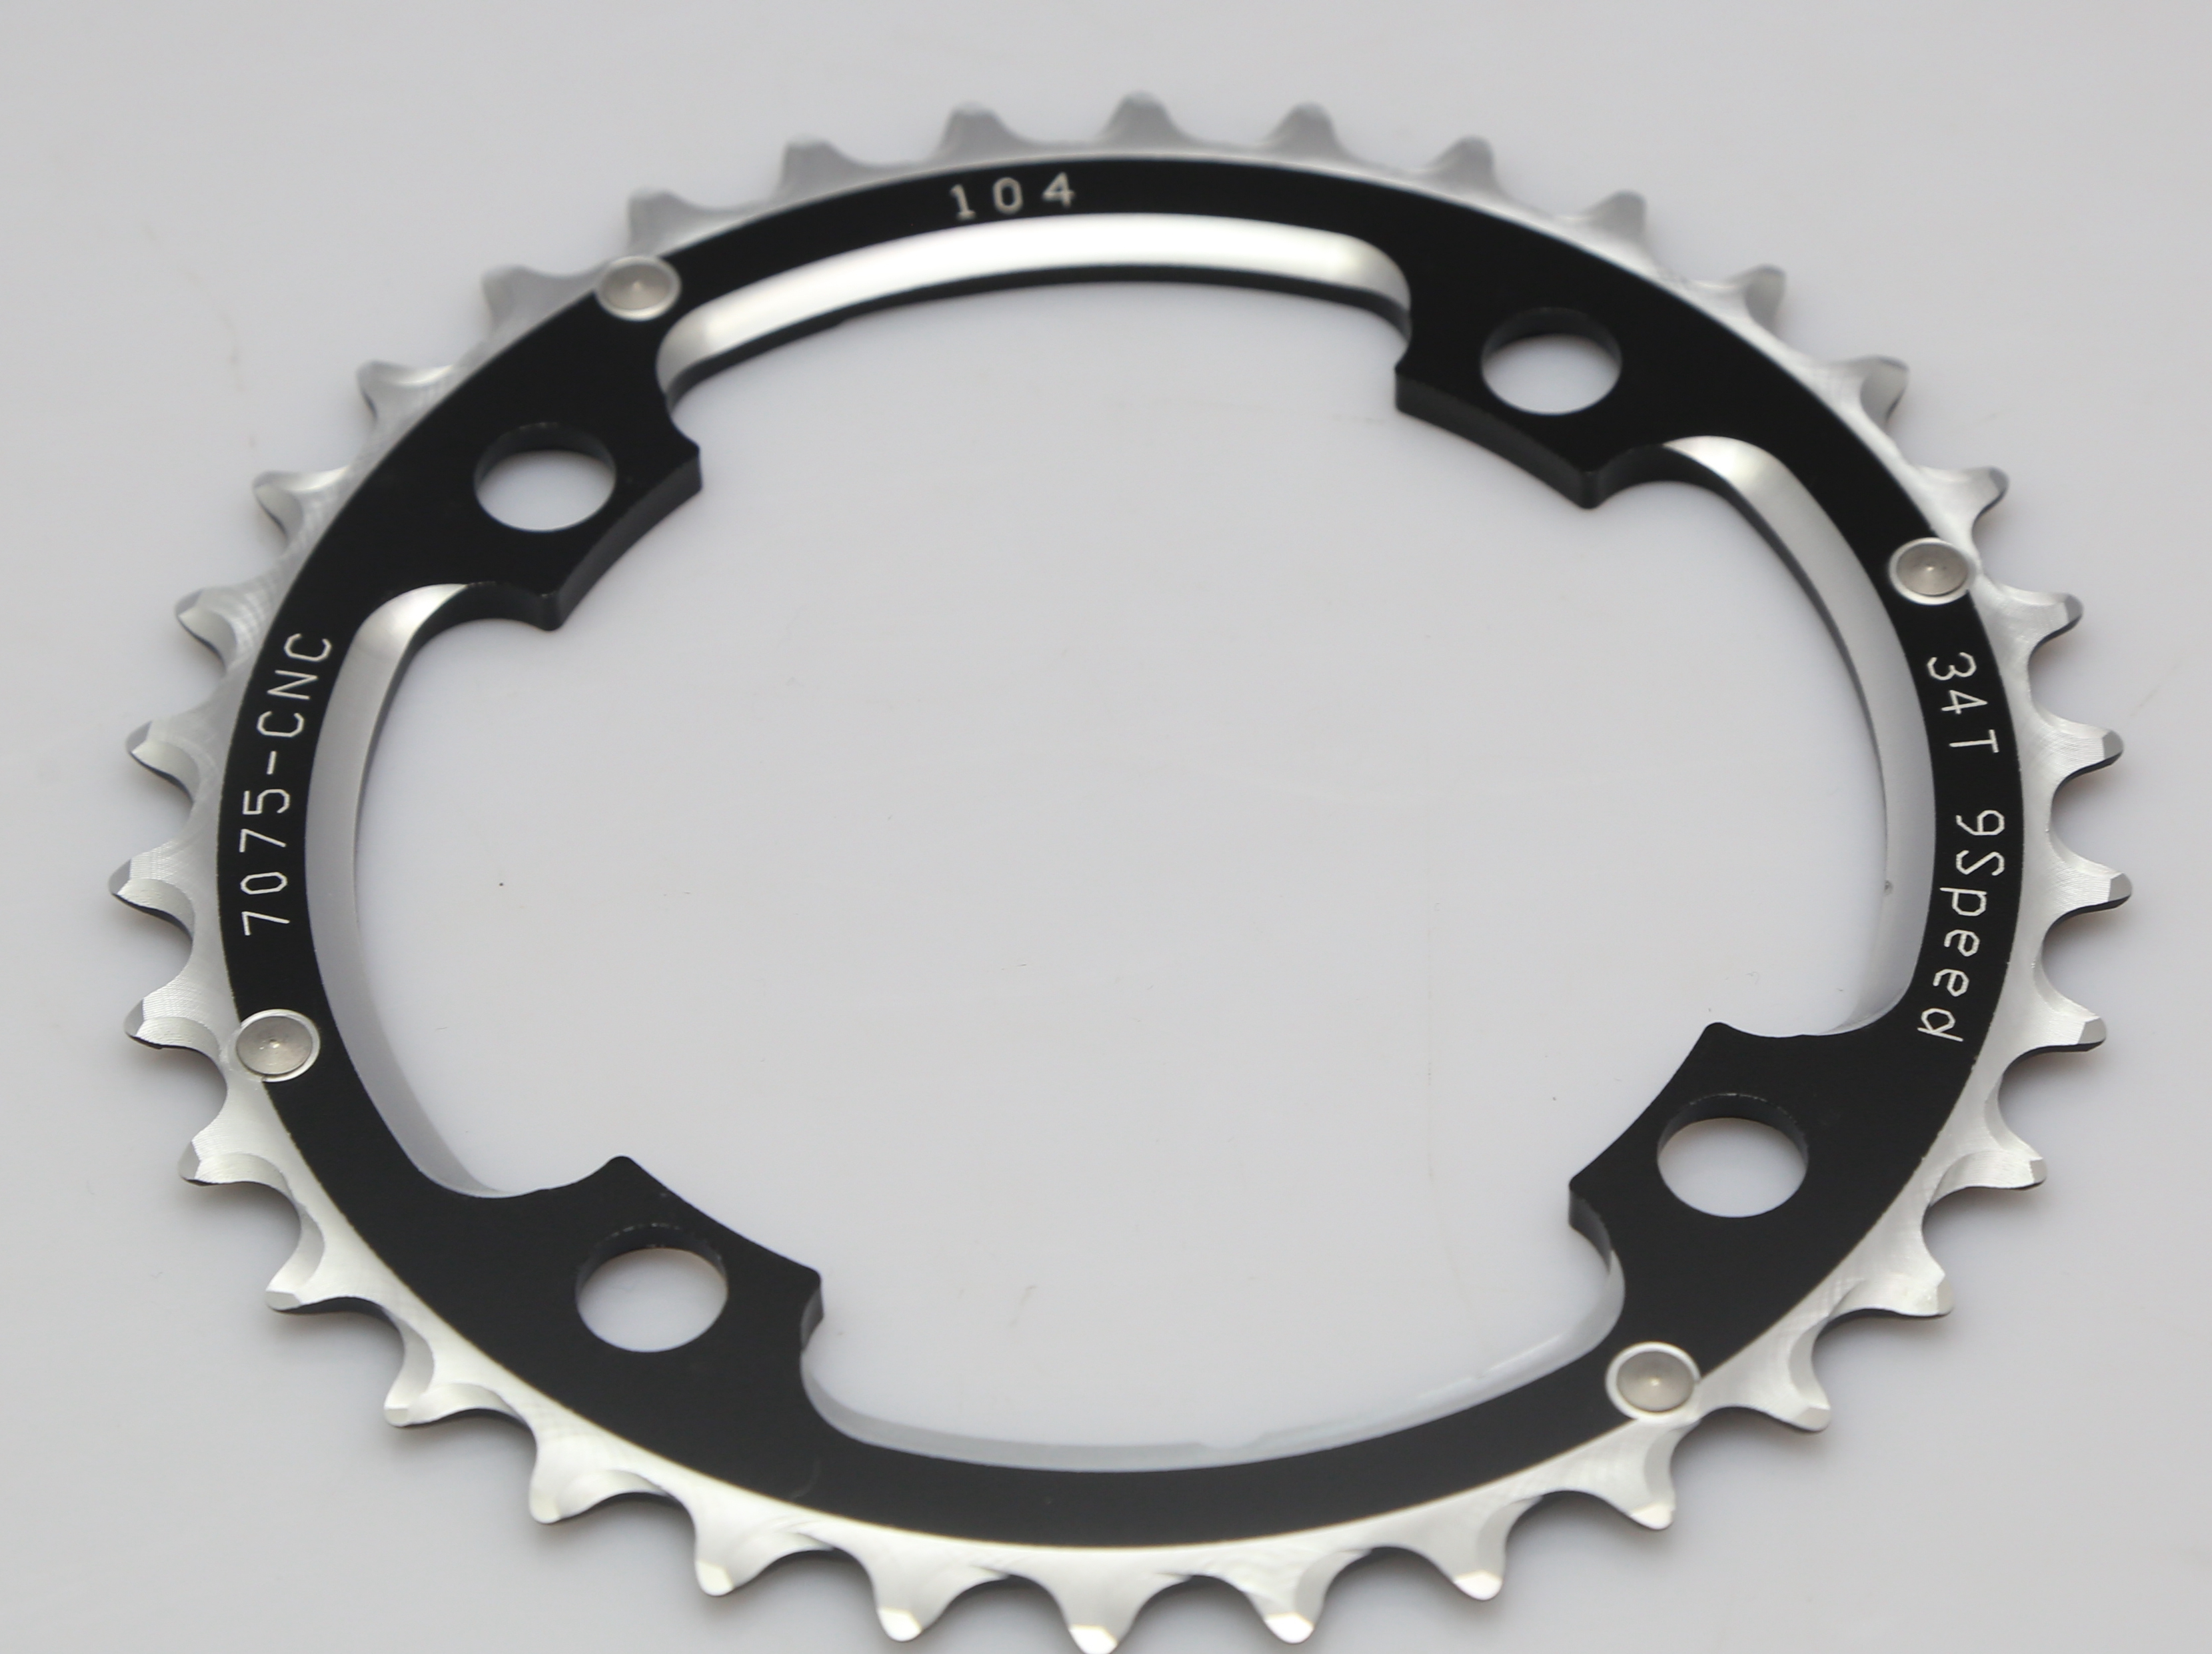 2016 NEW Driveline black 34T BCD 104mm 49g MTB chainring2016 NEW Driveline black 34T BCD 104mm 49g MTB chainring